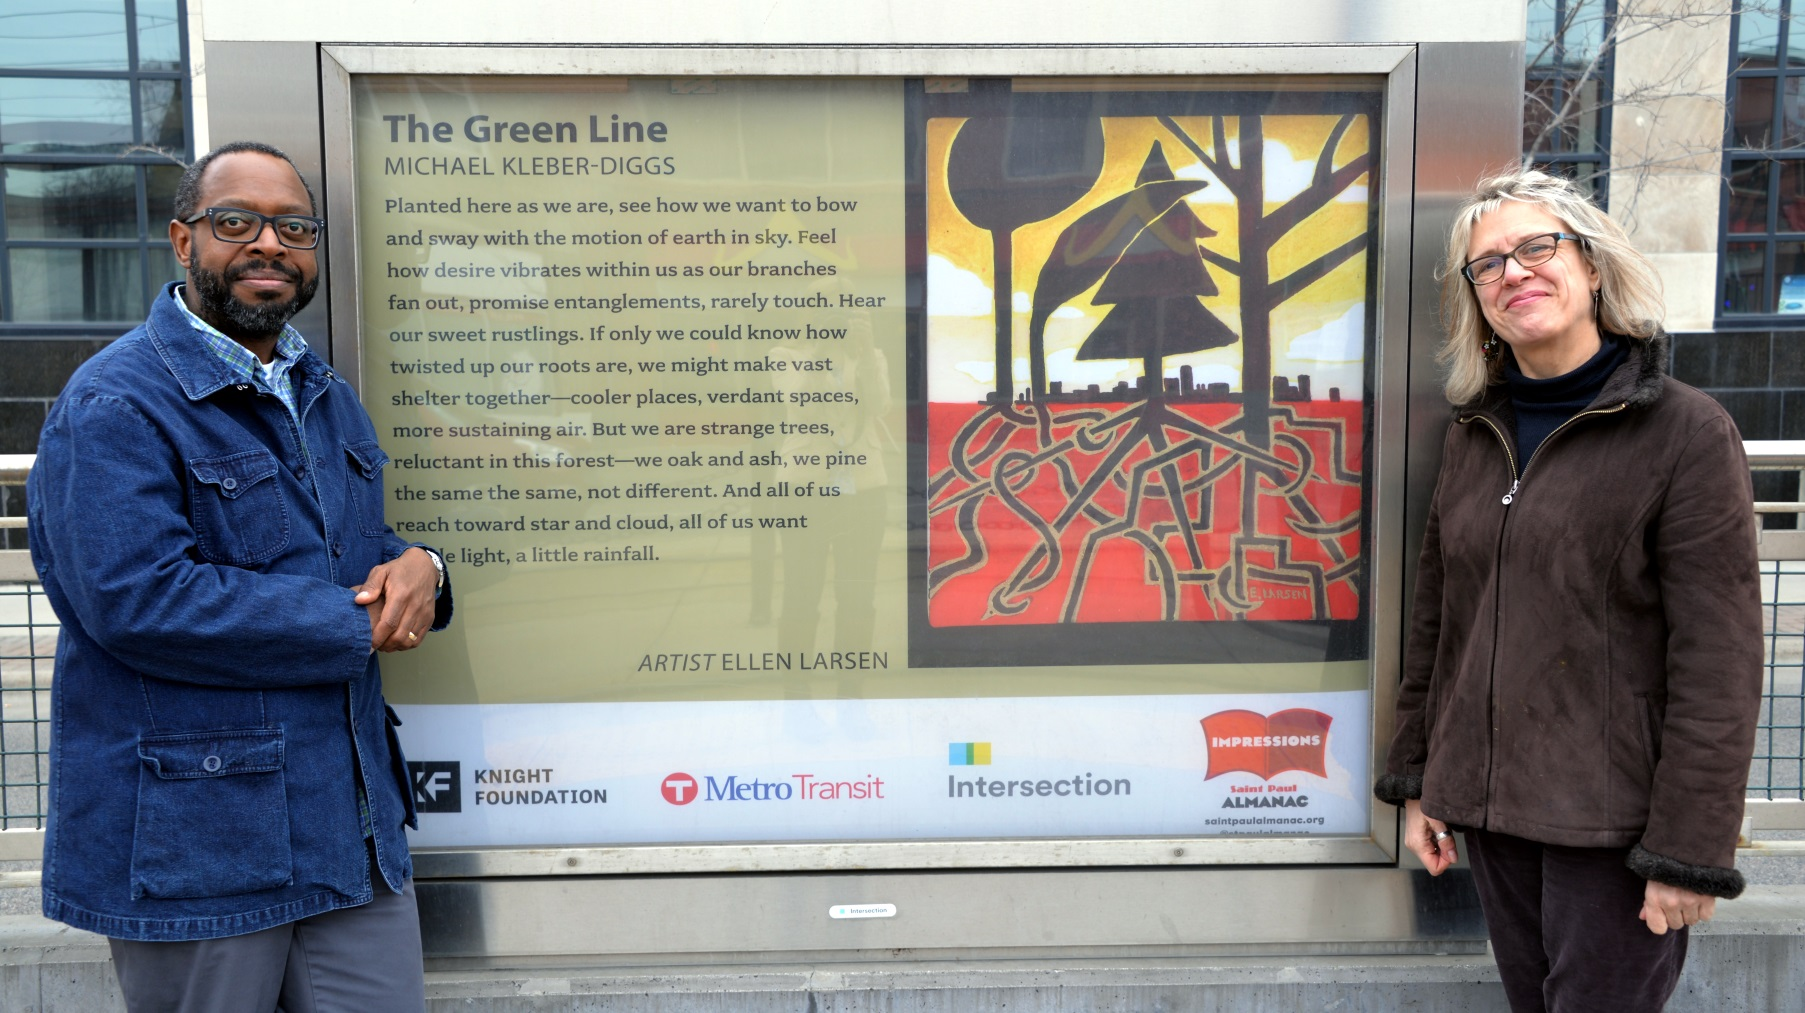 Michael Kleber-Diggs and Ellen Larsen with their poem and artwork at the Green Line's Western Avenue Station.